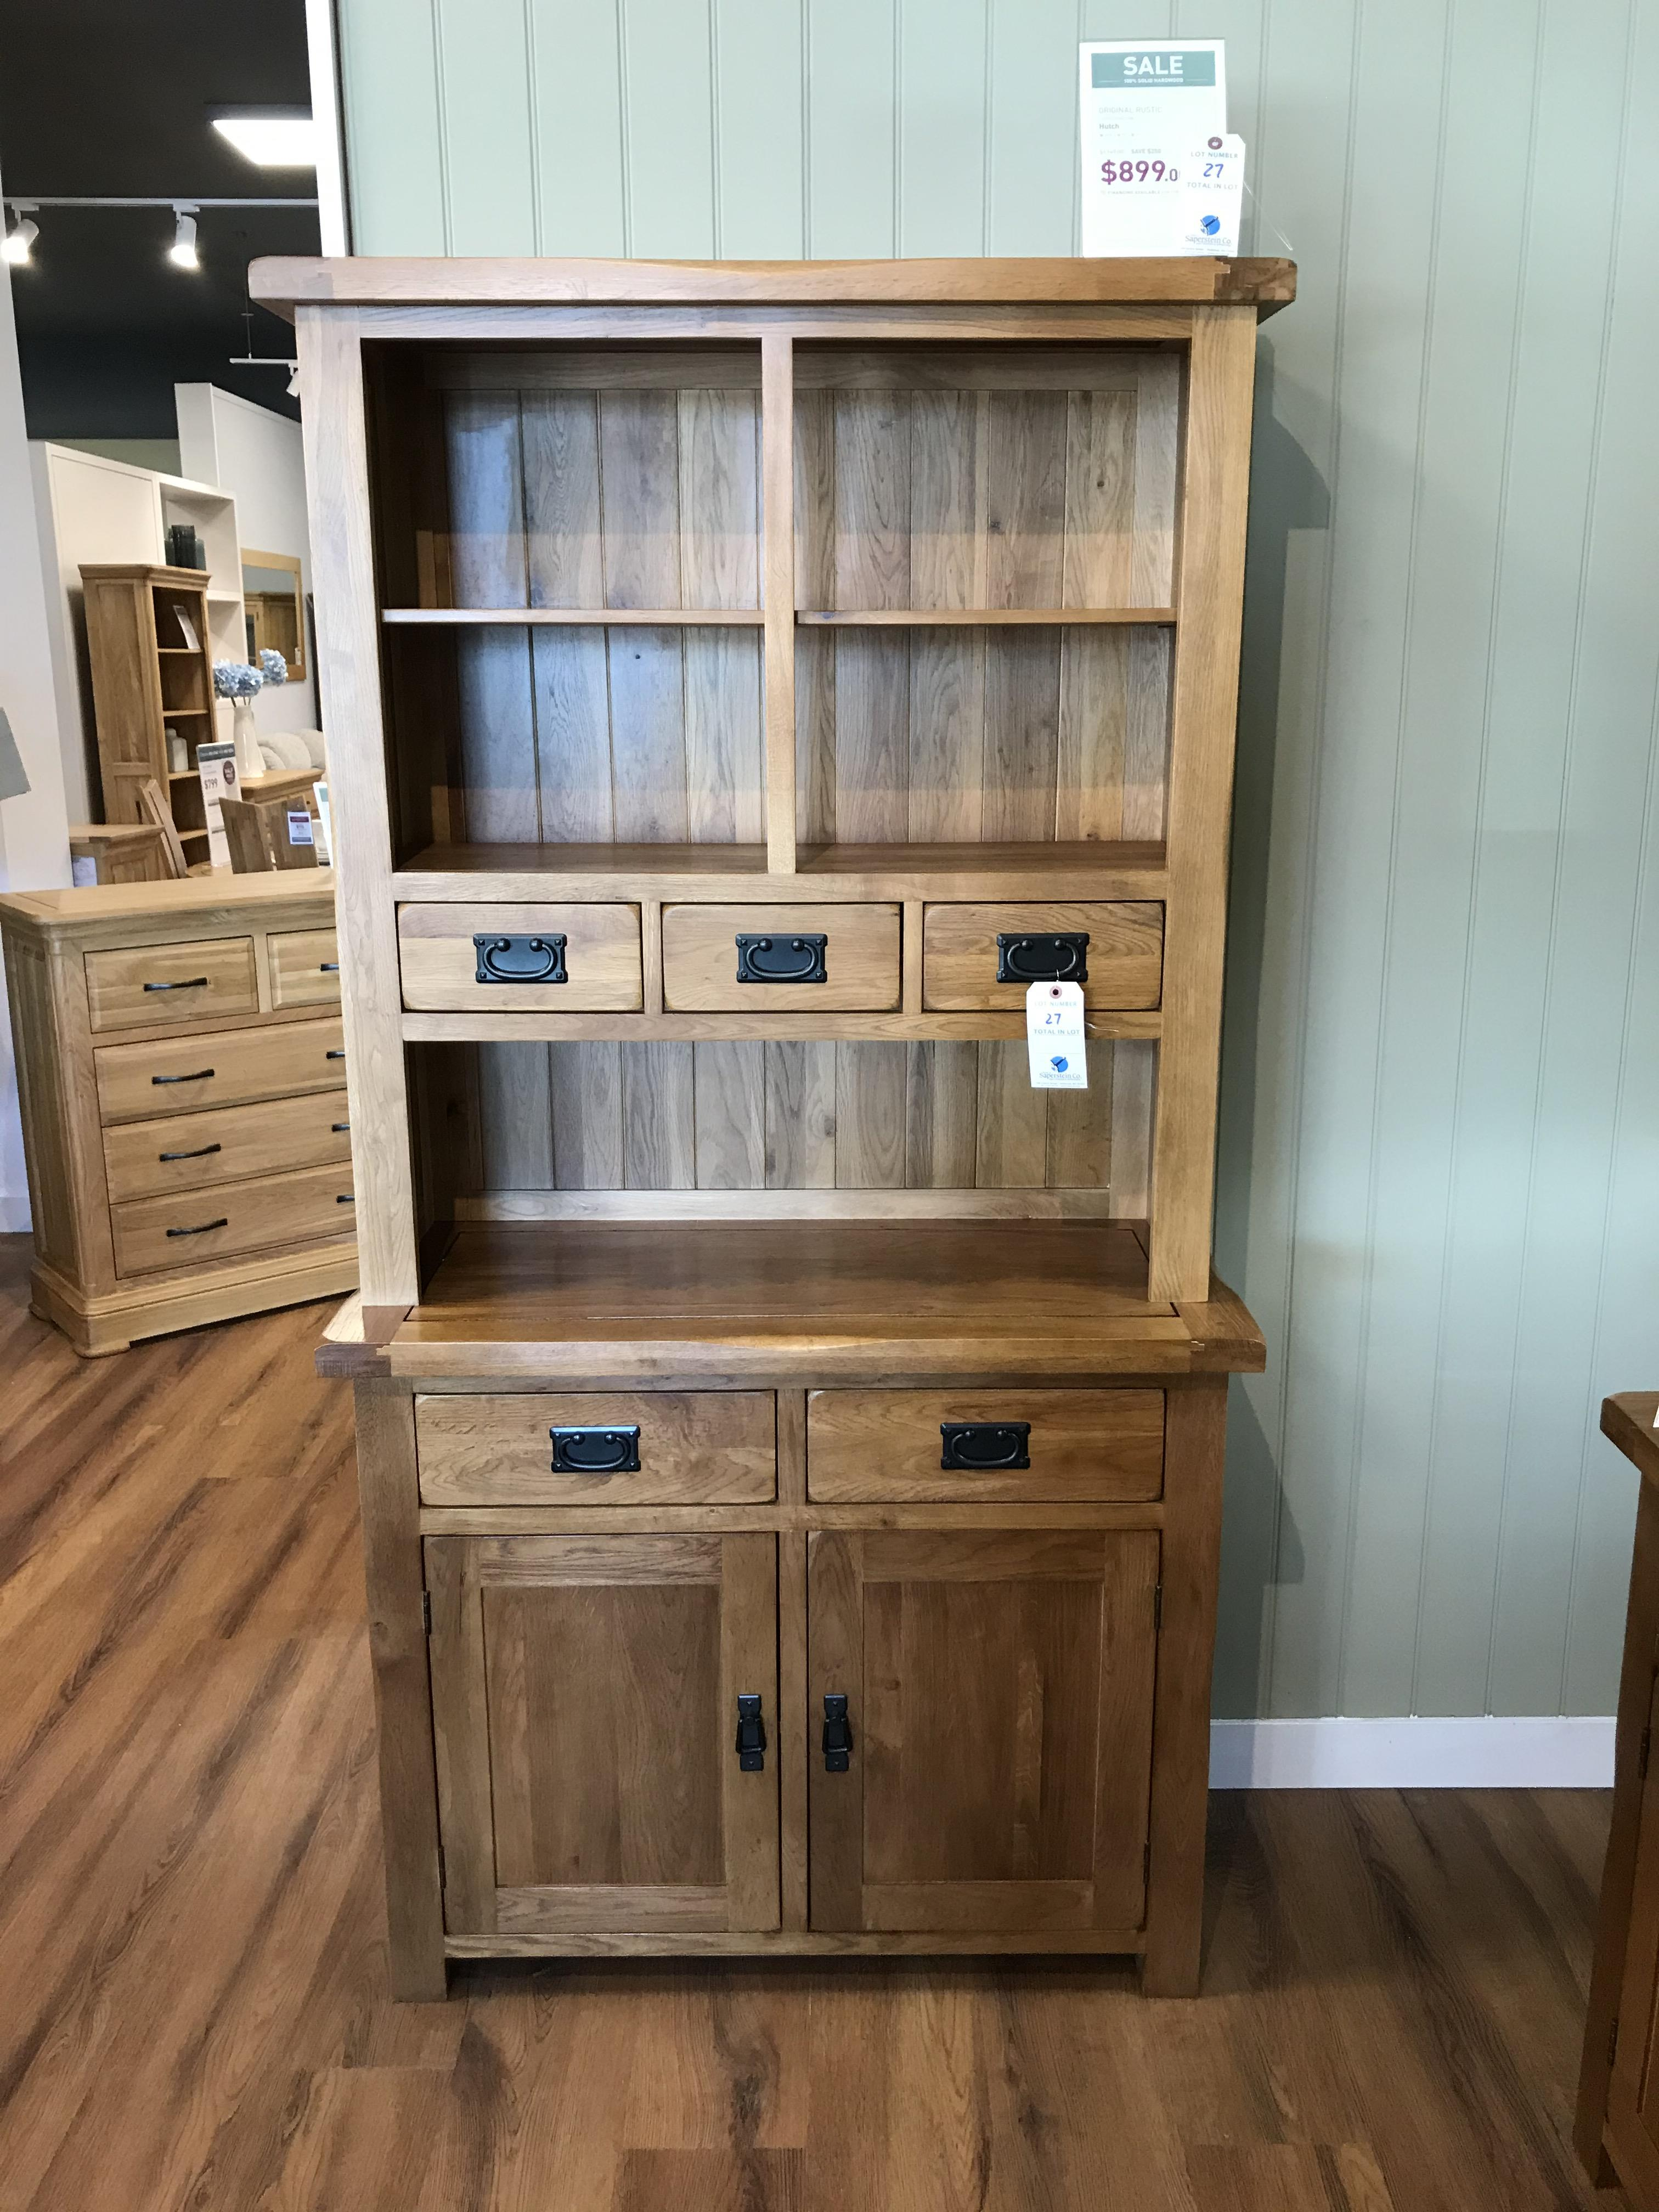 Hutch (Original Rustic) See Picture For Dimensions and Product Info